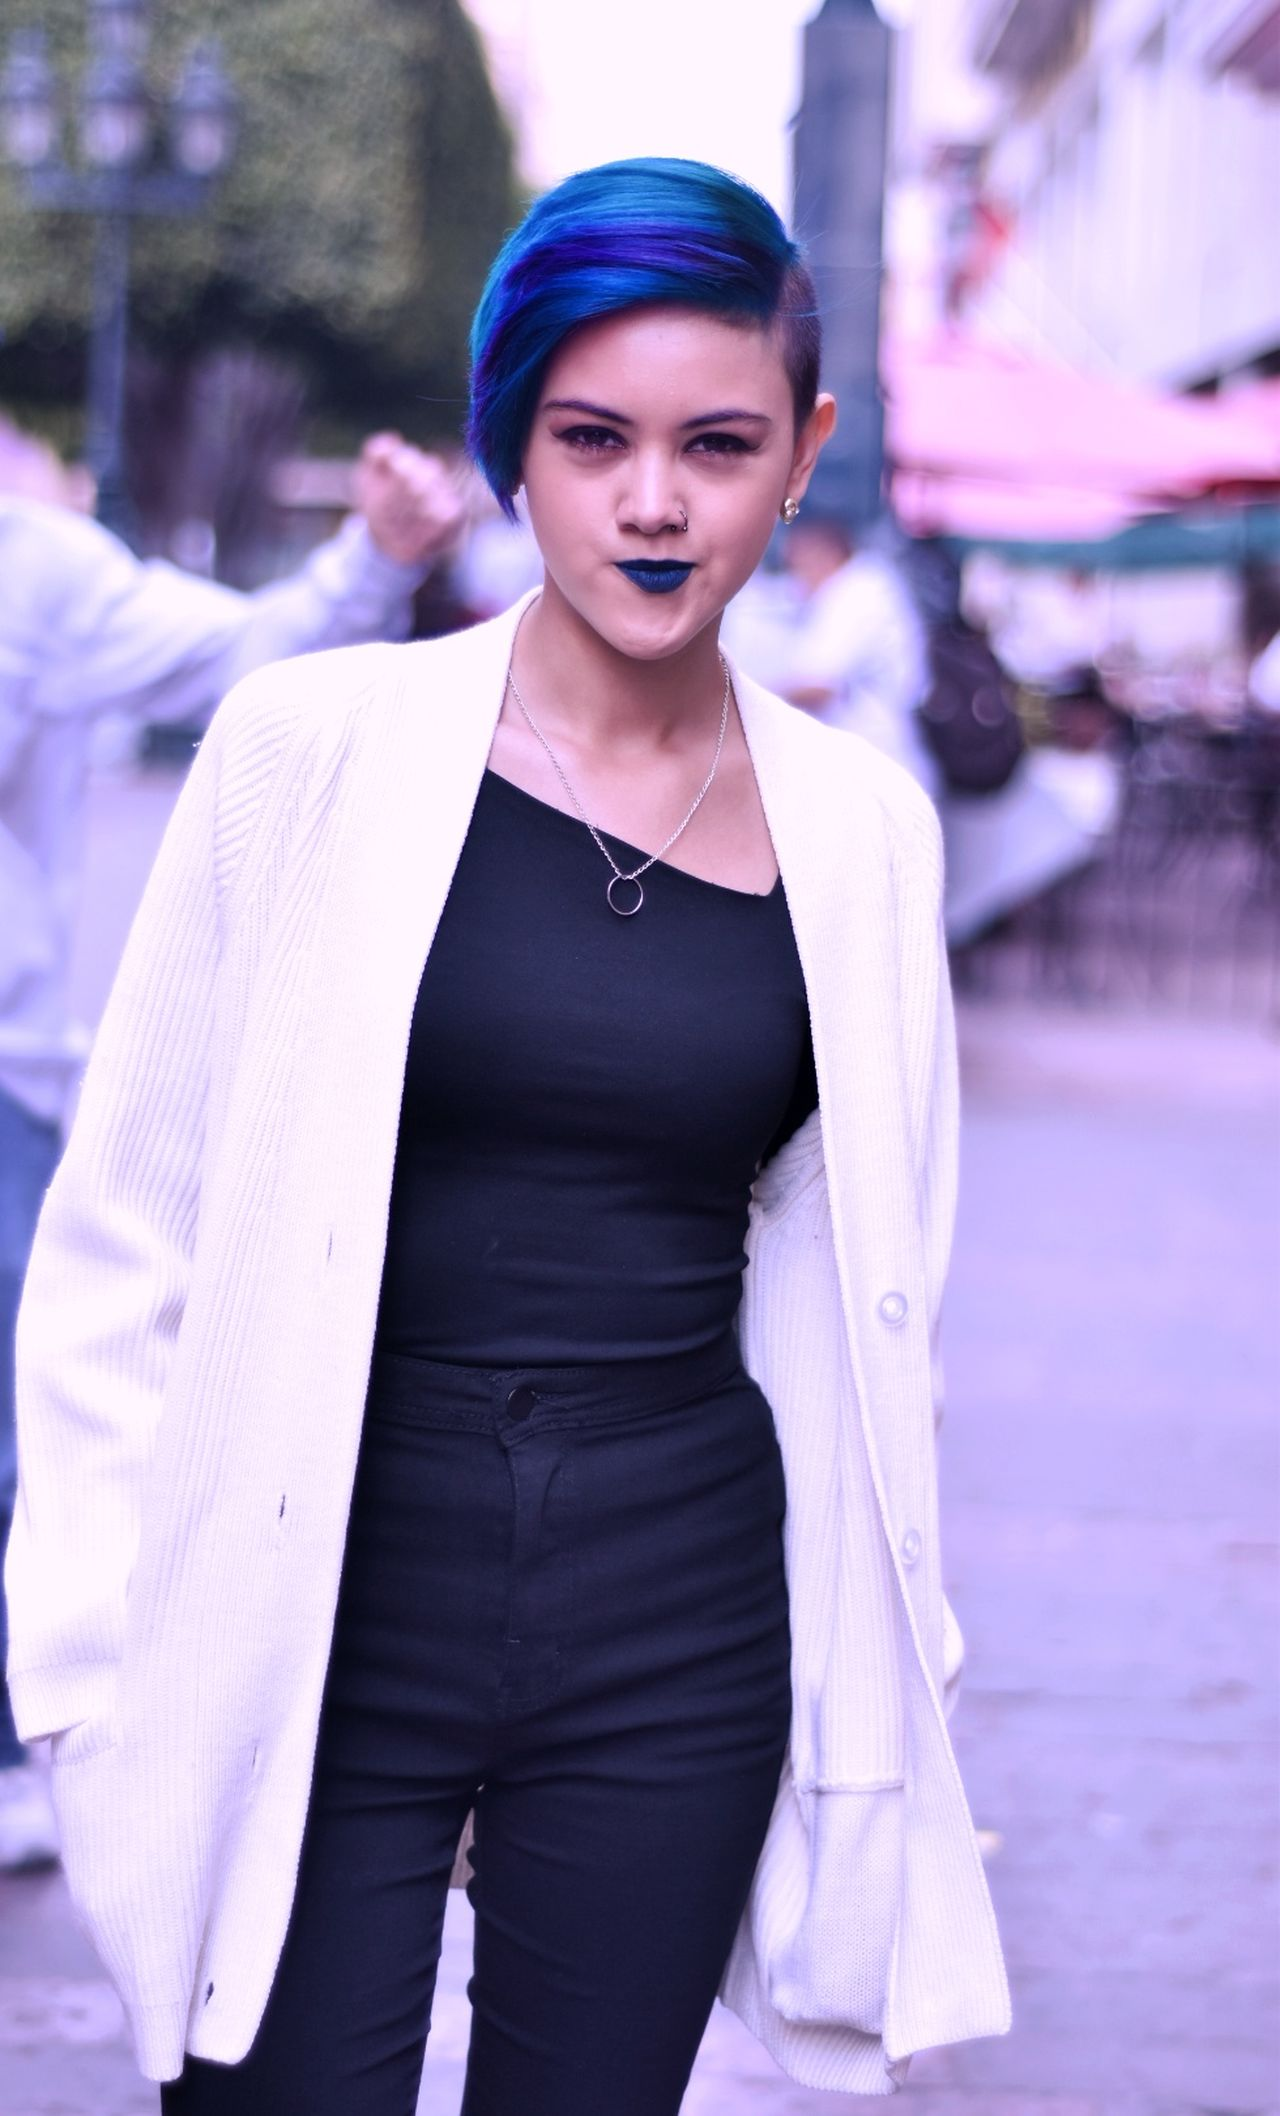 BlueHair Manicpanic Fashion Front View One Woman Only One Person Beautiful People Portrait Only Women Beauty Outdoors Beautiful Woman Black Color People Day Tumblrgirl First Eyeem Photo